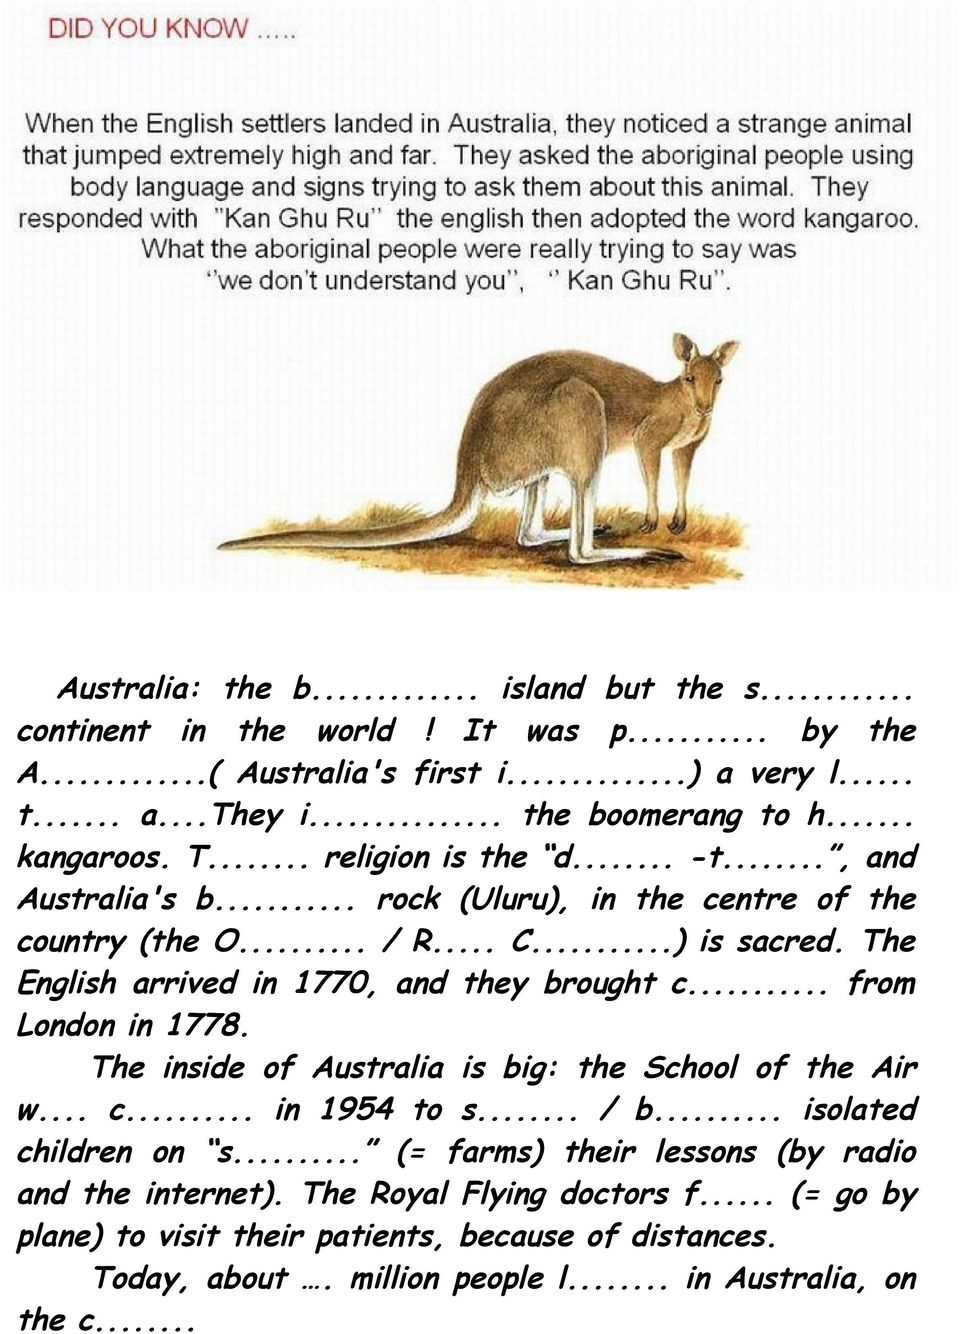 The English arrived in 1770, and they brought c... from London in 1778. The inside of Australia is big: the School of the Air w... c... in 1954 to s... / b.